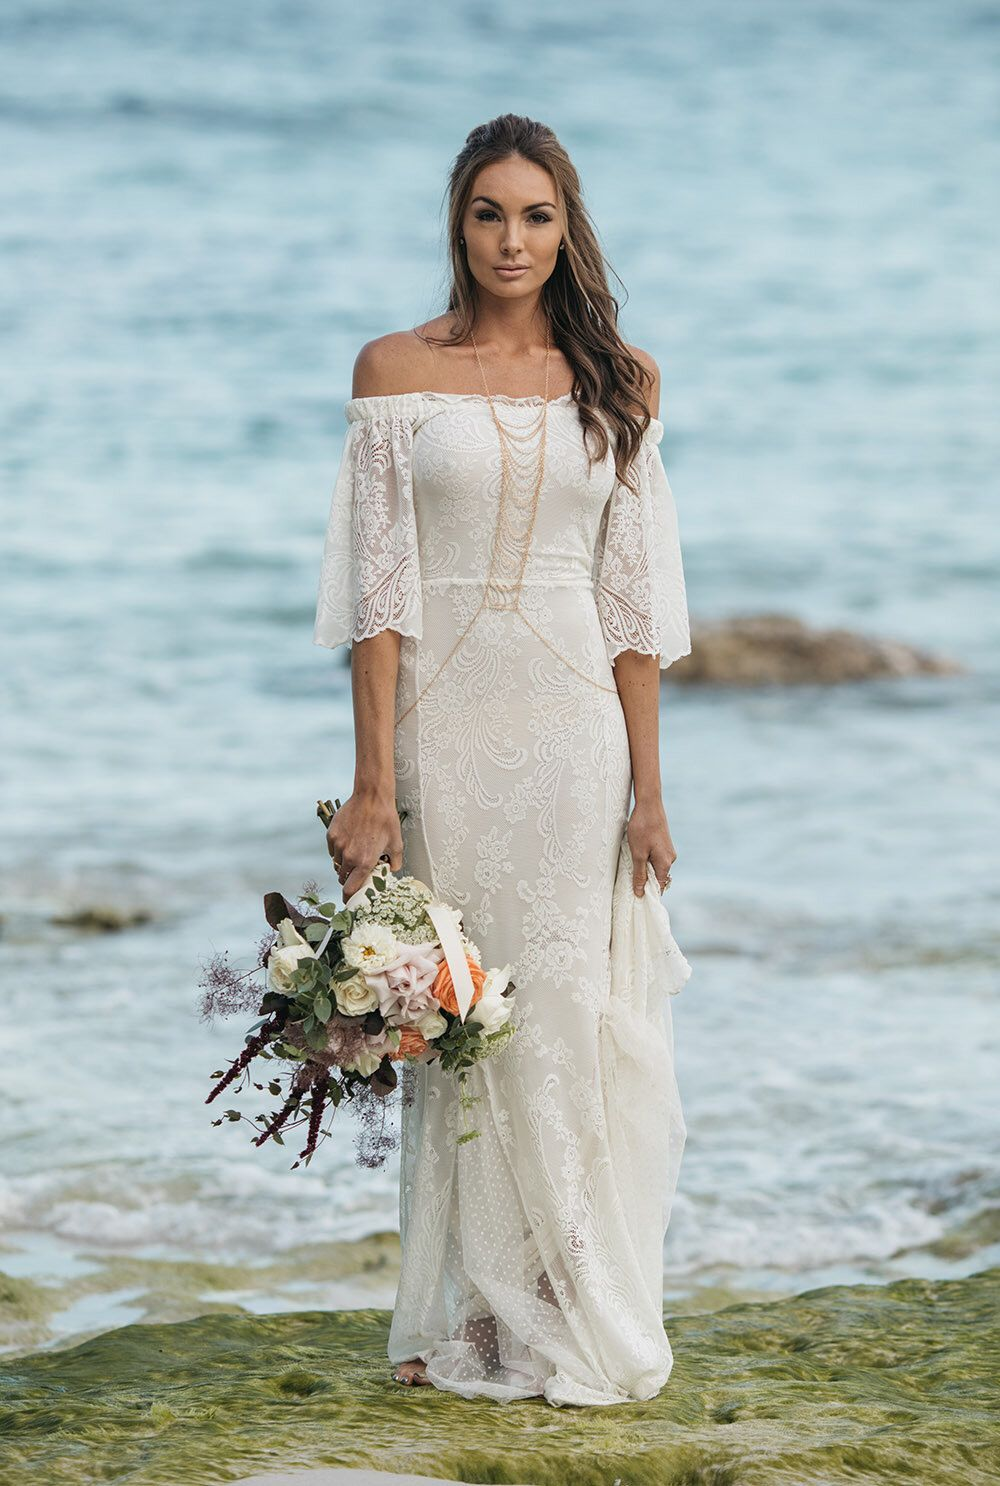 Youuve got the love lace wedding dress by whitemeadowbridal on etsy